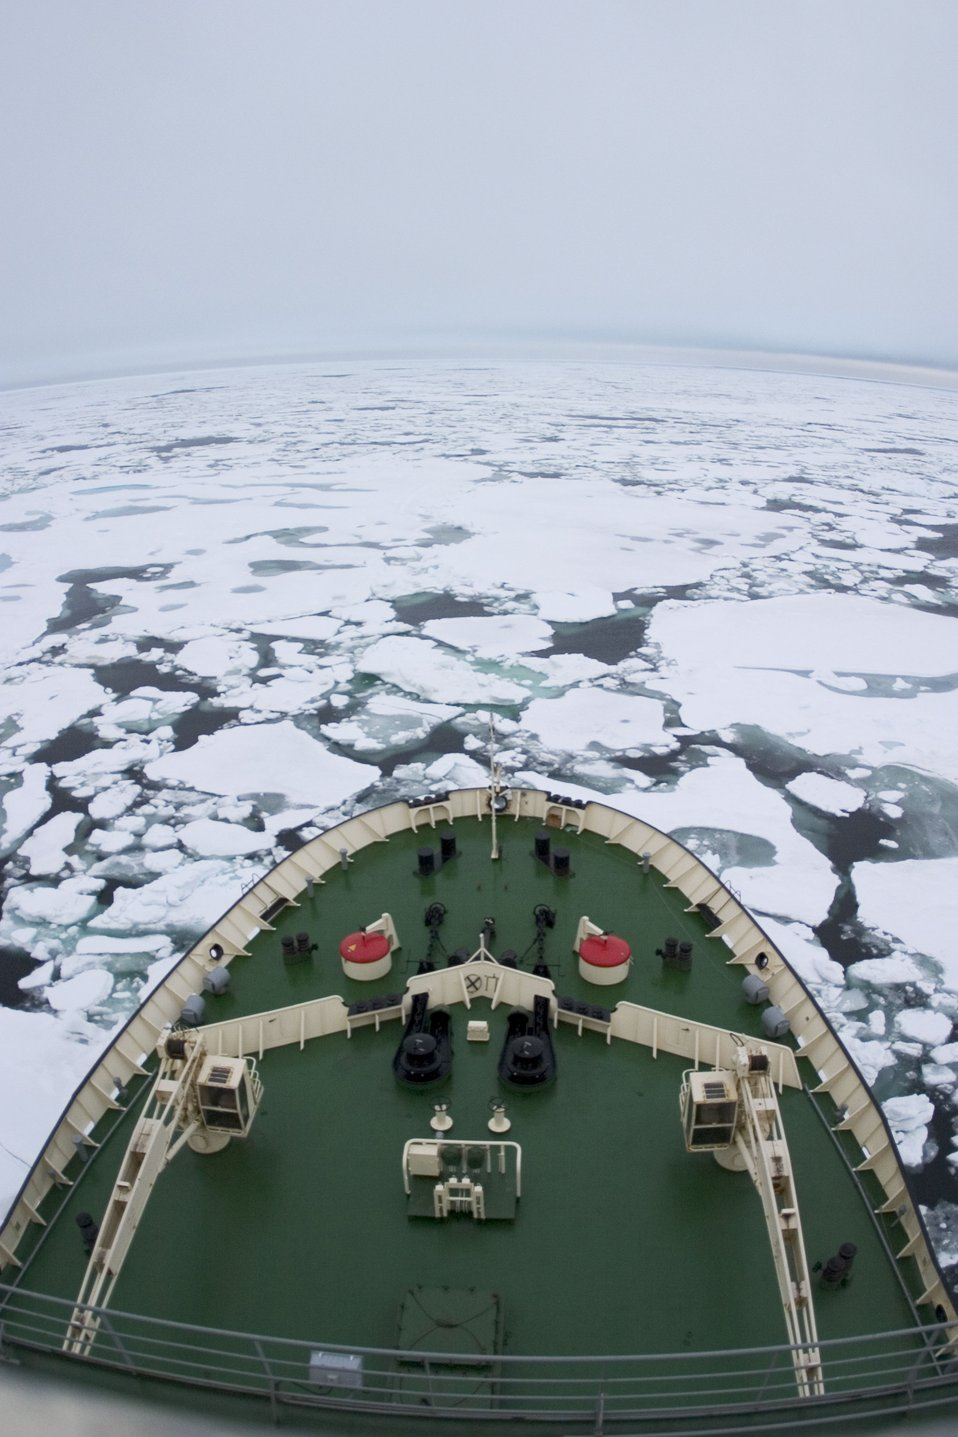 The KAPITAN DRANITSYN encounters its first sea ice during NABOS 2006. See: http://www.naturalsciences.org/education/arctic/